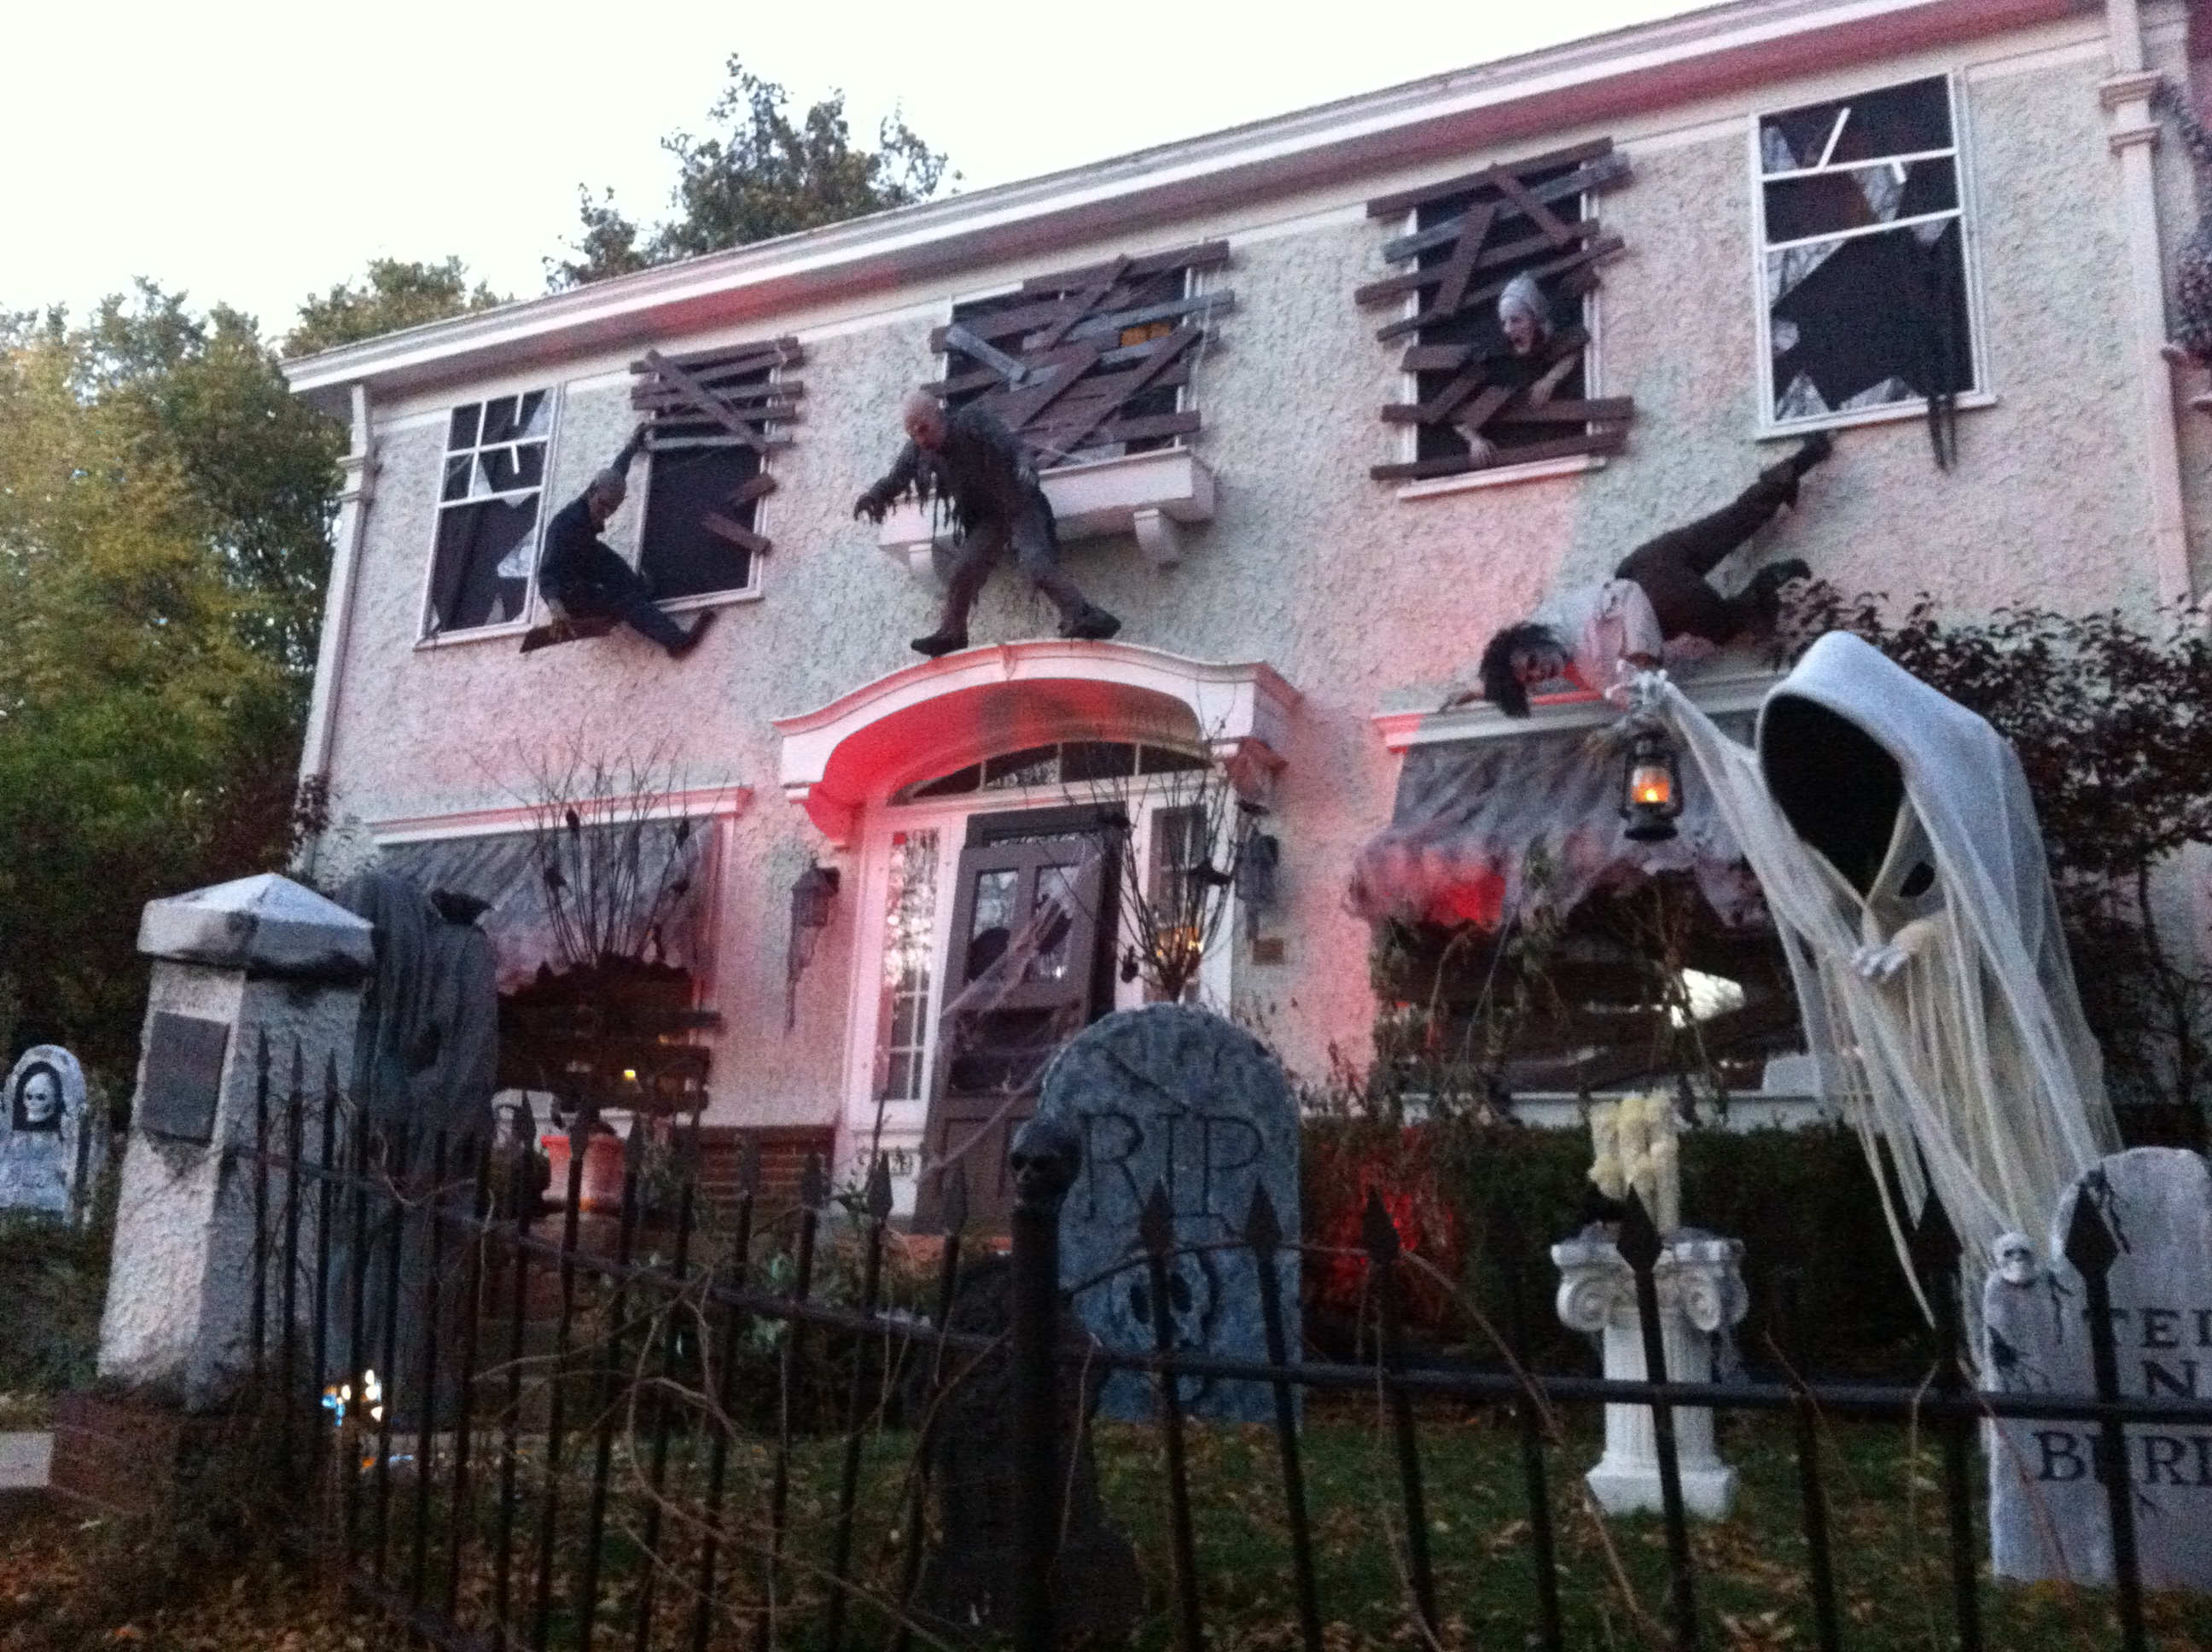 Bon Behind The Spooky Scenes At Wauwatosau0027s Most Haunted House | WUWM